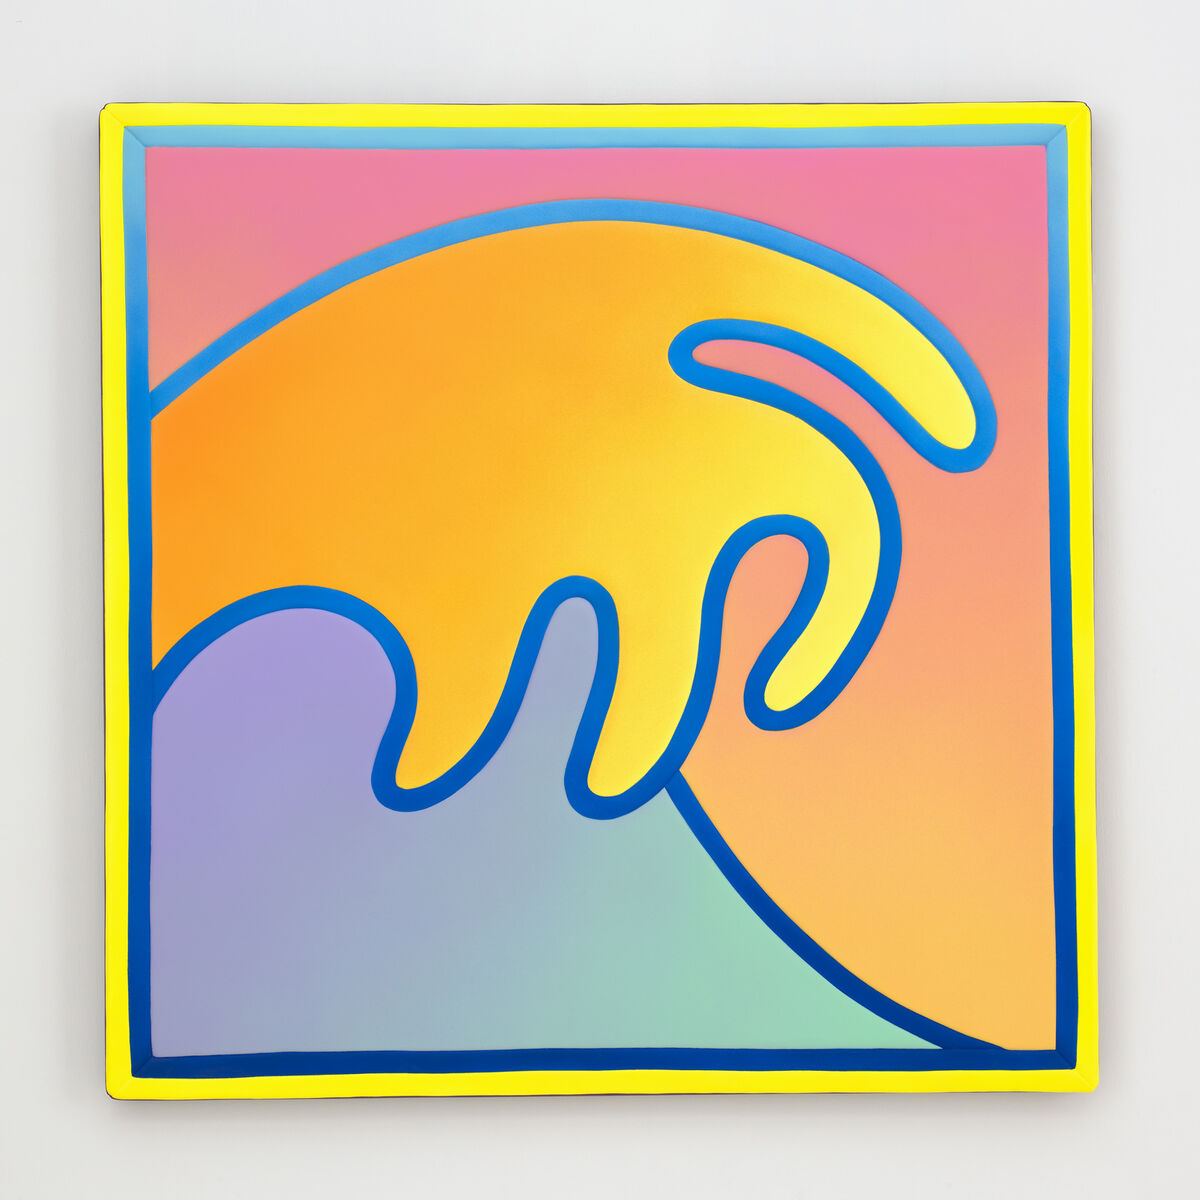 Alex Israel, Wave, 2018. © Alex Israel. Photo by Martin Wong. Courtesy of Gagosian.